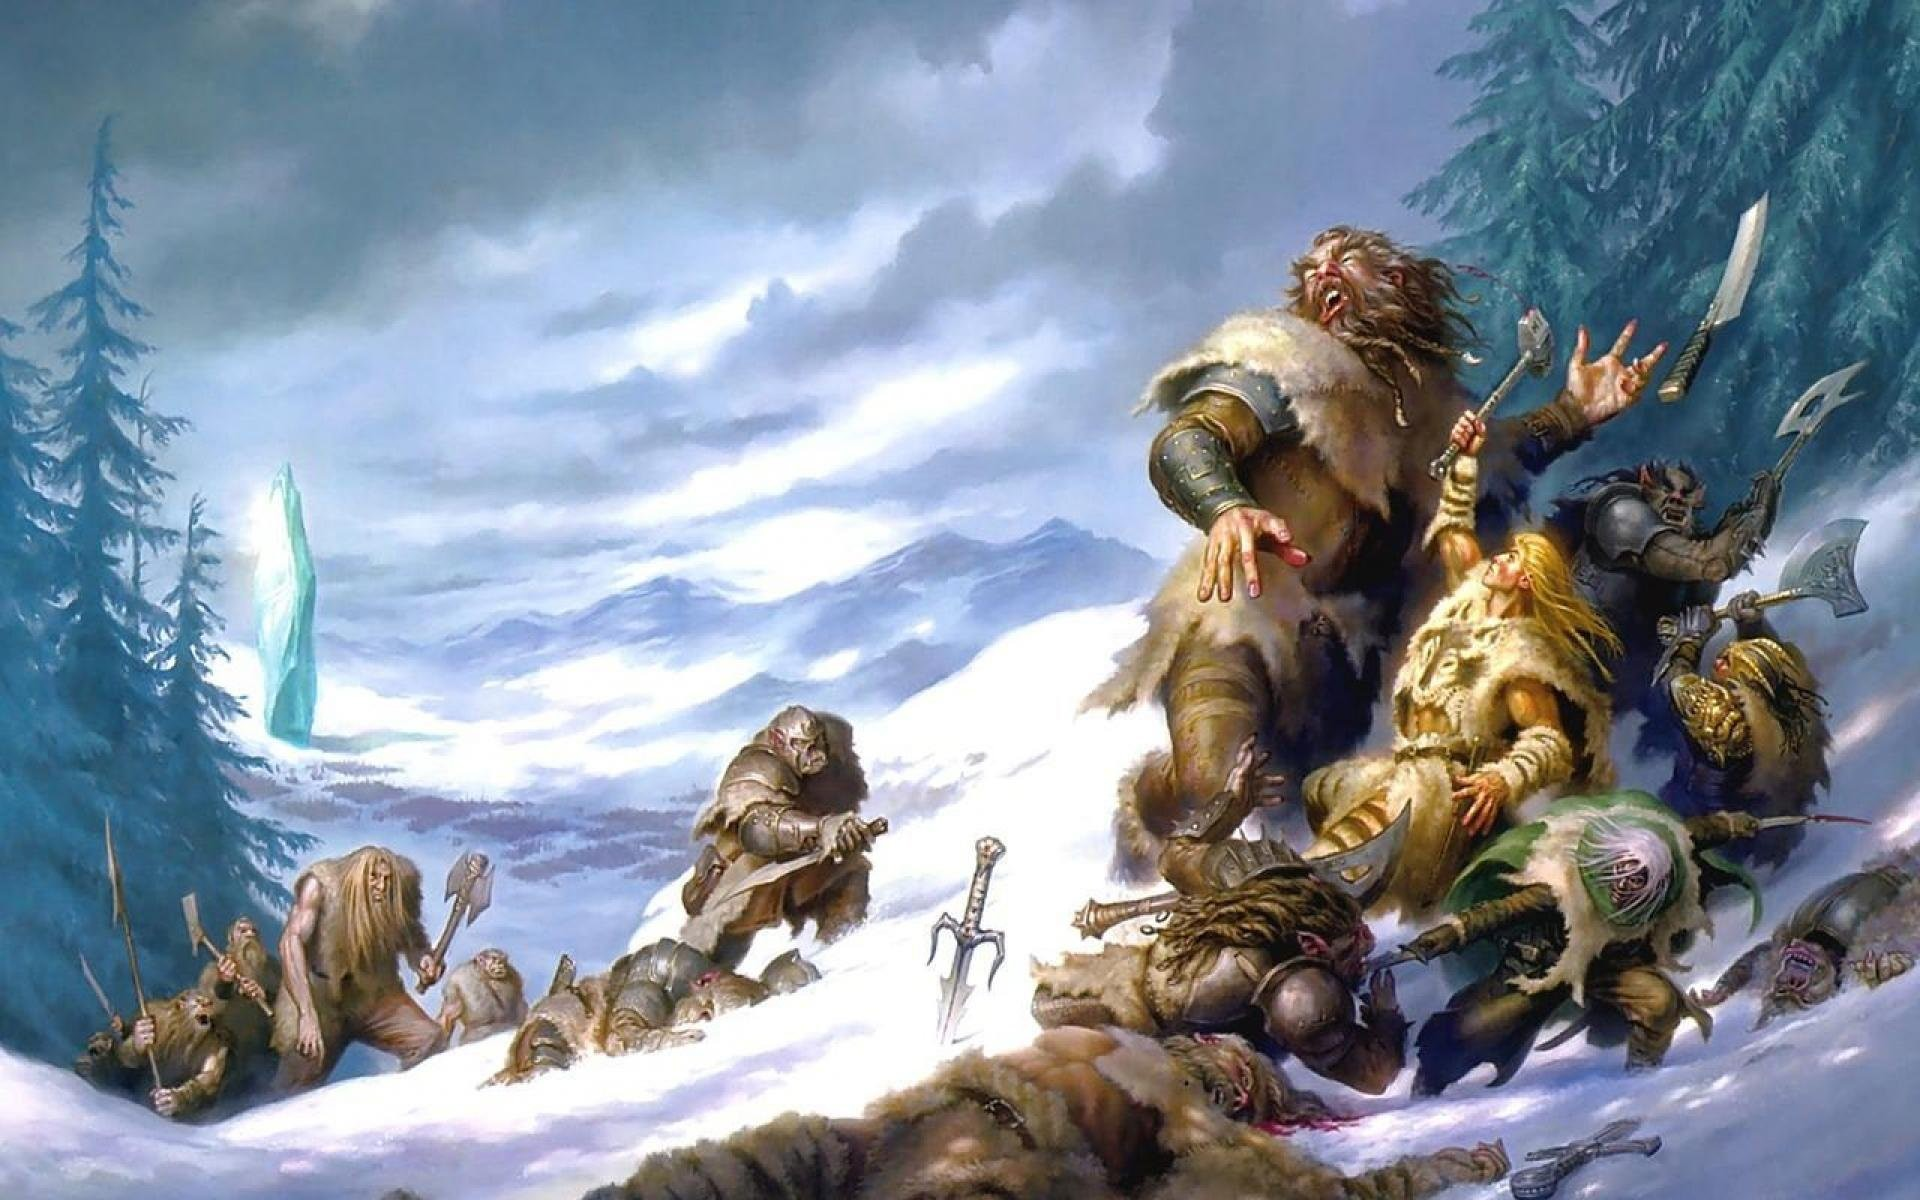 Dungeons and Dragons HD Wallpapers | HD Wallpapers 365